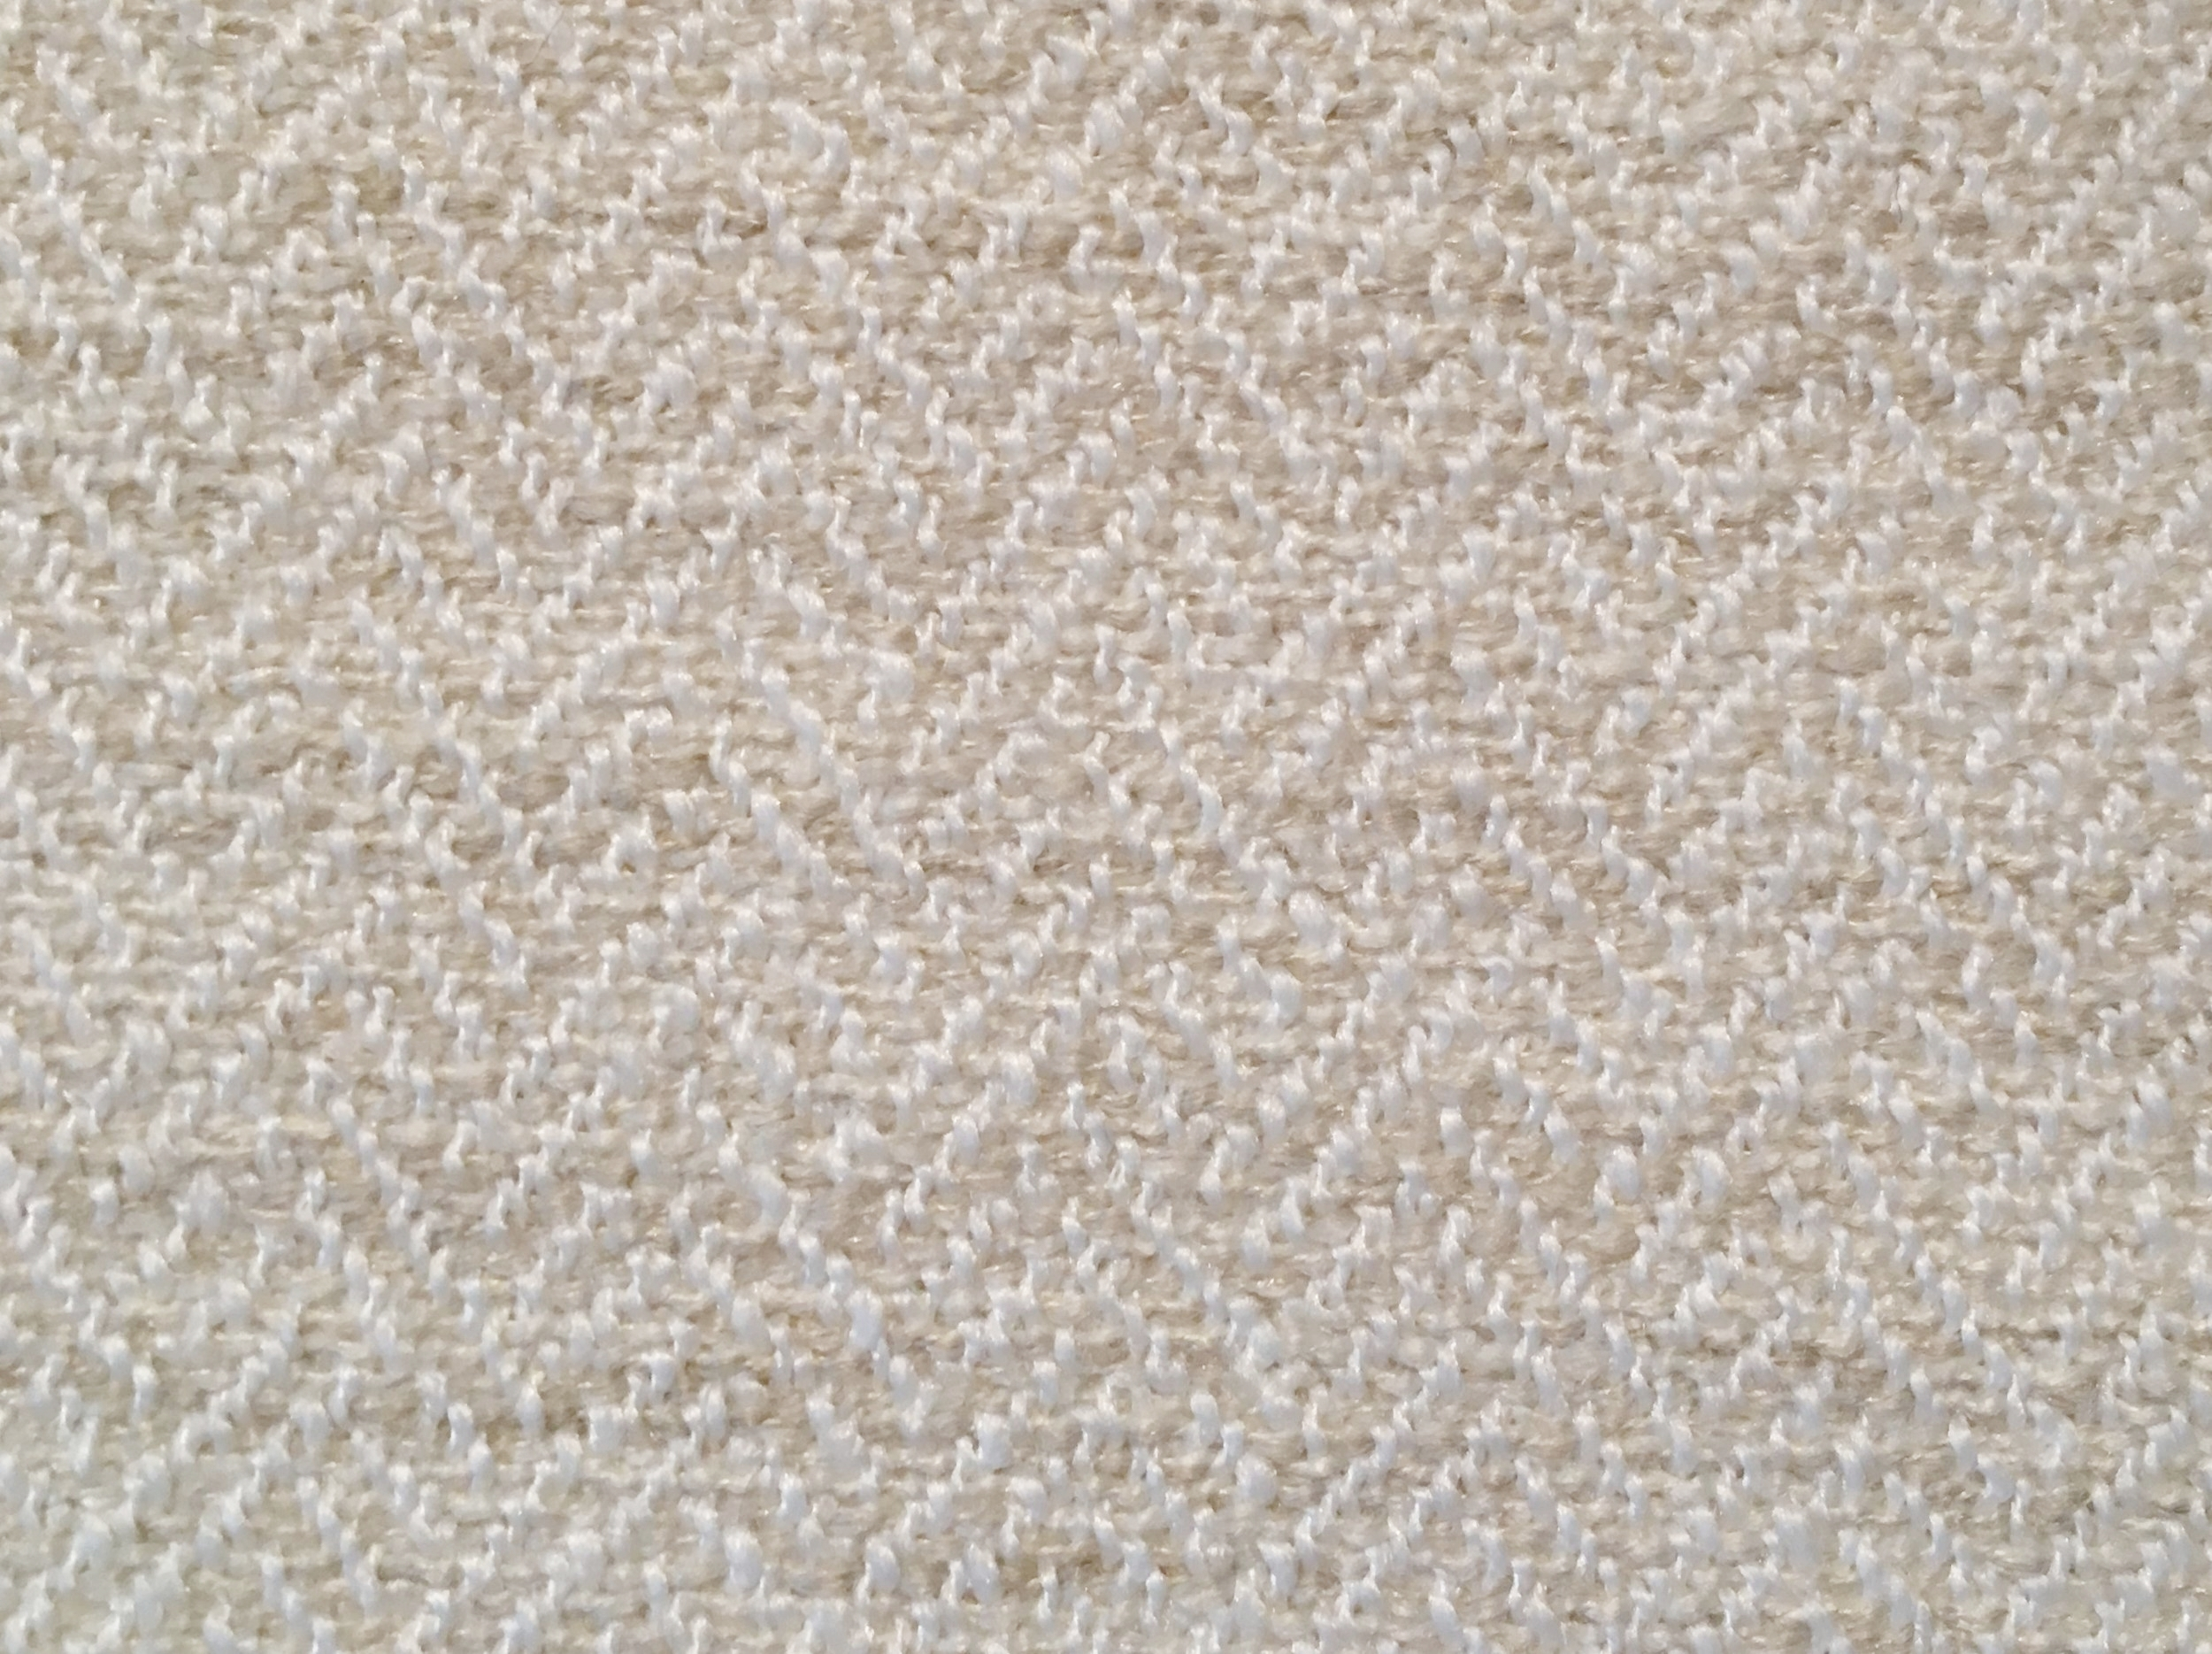 fabric close up .jpg